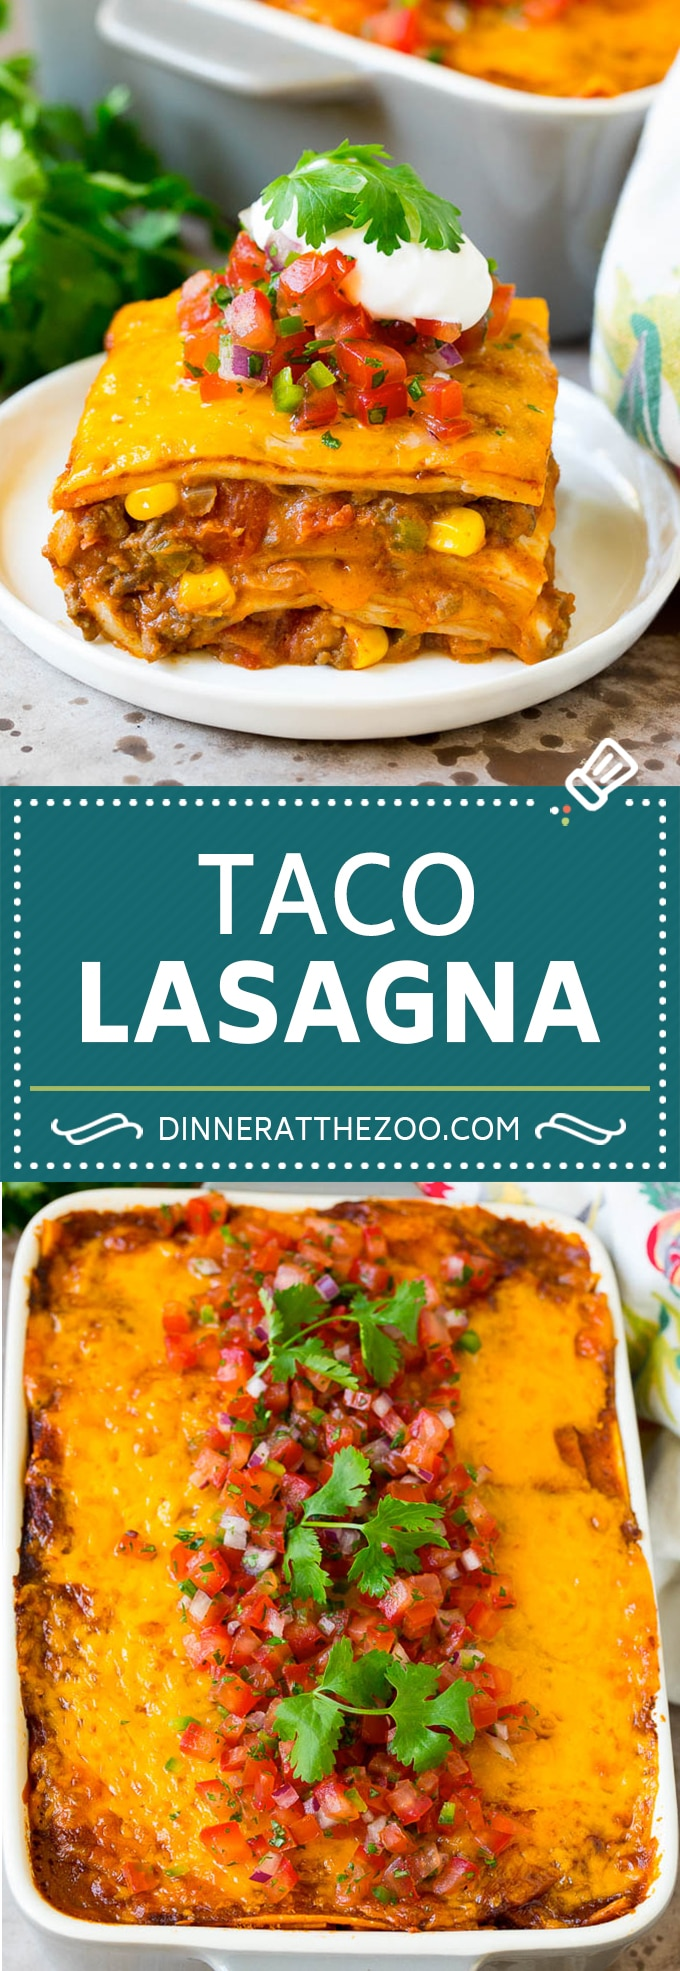 This taco lasagna is layers of flour tortillas, melted cheese, beans, veggies and ground beef, all baked together until golden brown.